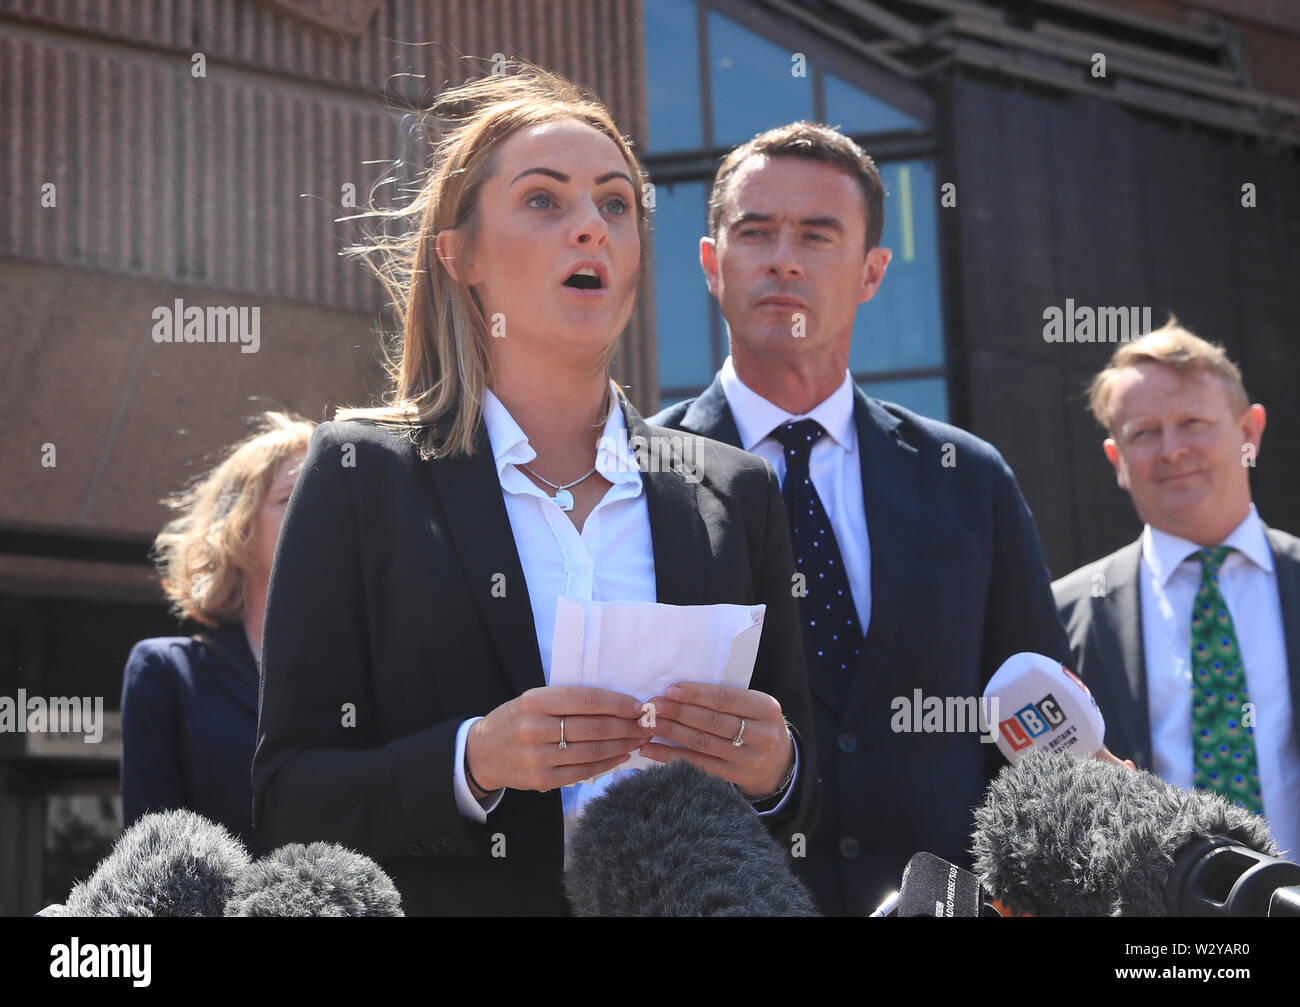 Anthony Grainger's partner Gail Hadfield Grainger speaks to the media outside Liverpool Crown Court following the publication of the report of a public inquiry into the death of the 36 year old. Grainger from Bolton, was shot by a Greater Manchester Police firearms officer through the windscreen of a stolen Audi in a car park in Culcheth, Cheshire, on March 3 2012. - Stock Image